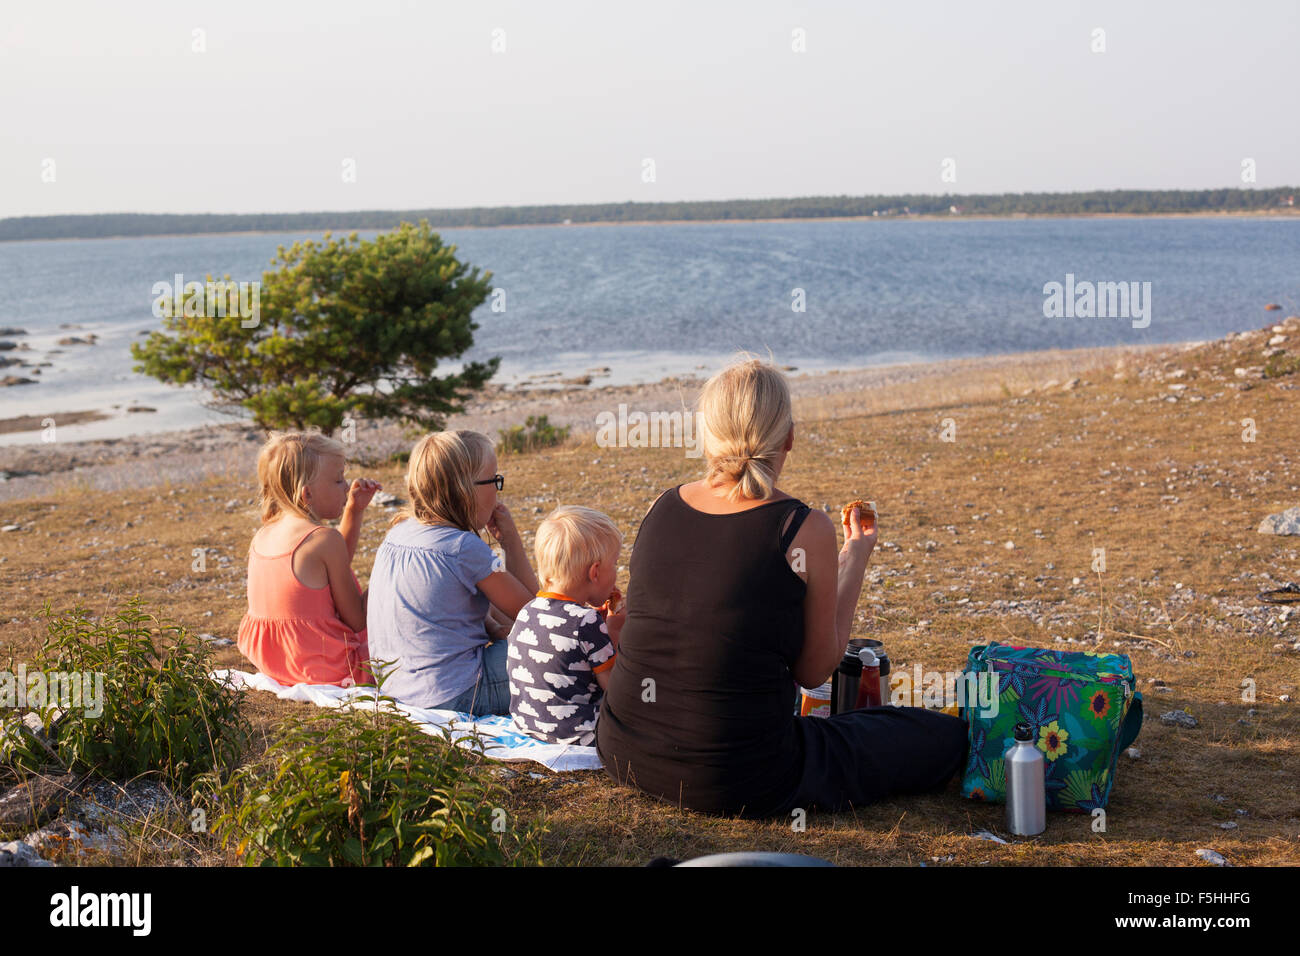 Sweden, Gotland, Faro, Gamle hamn, Family having picnic at beach - Stock Image